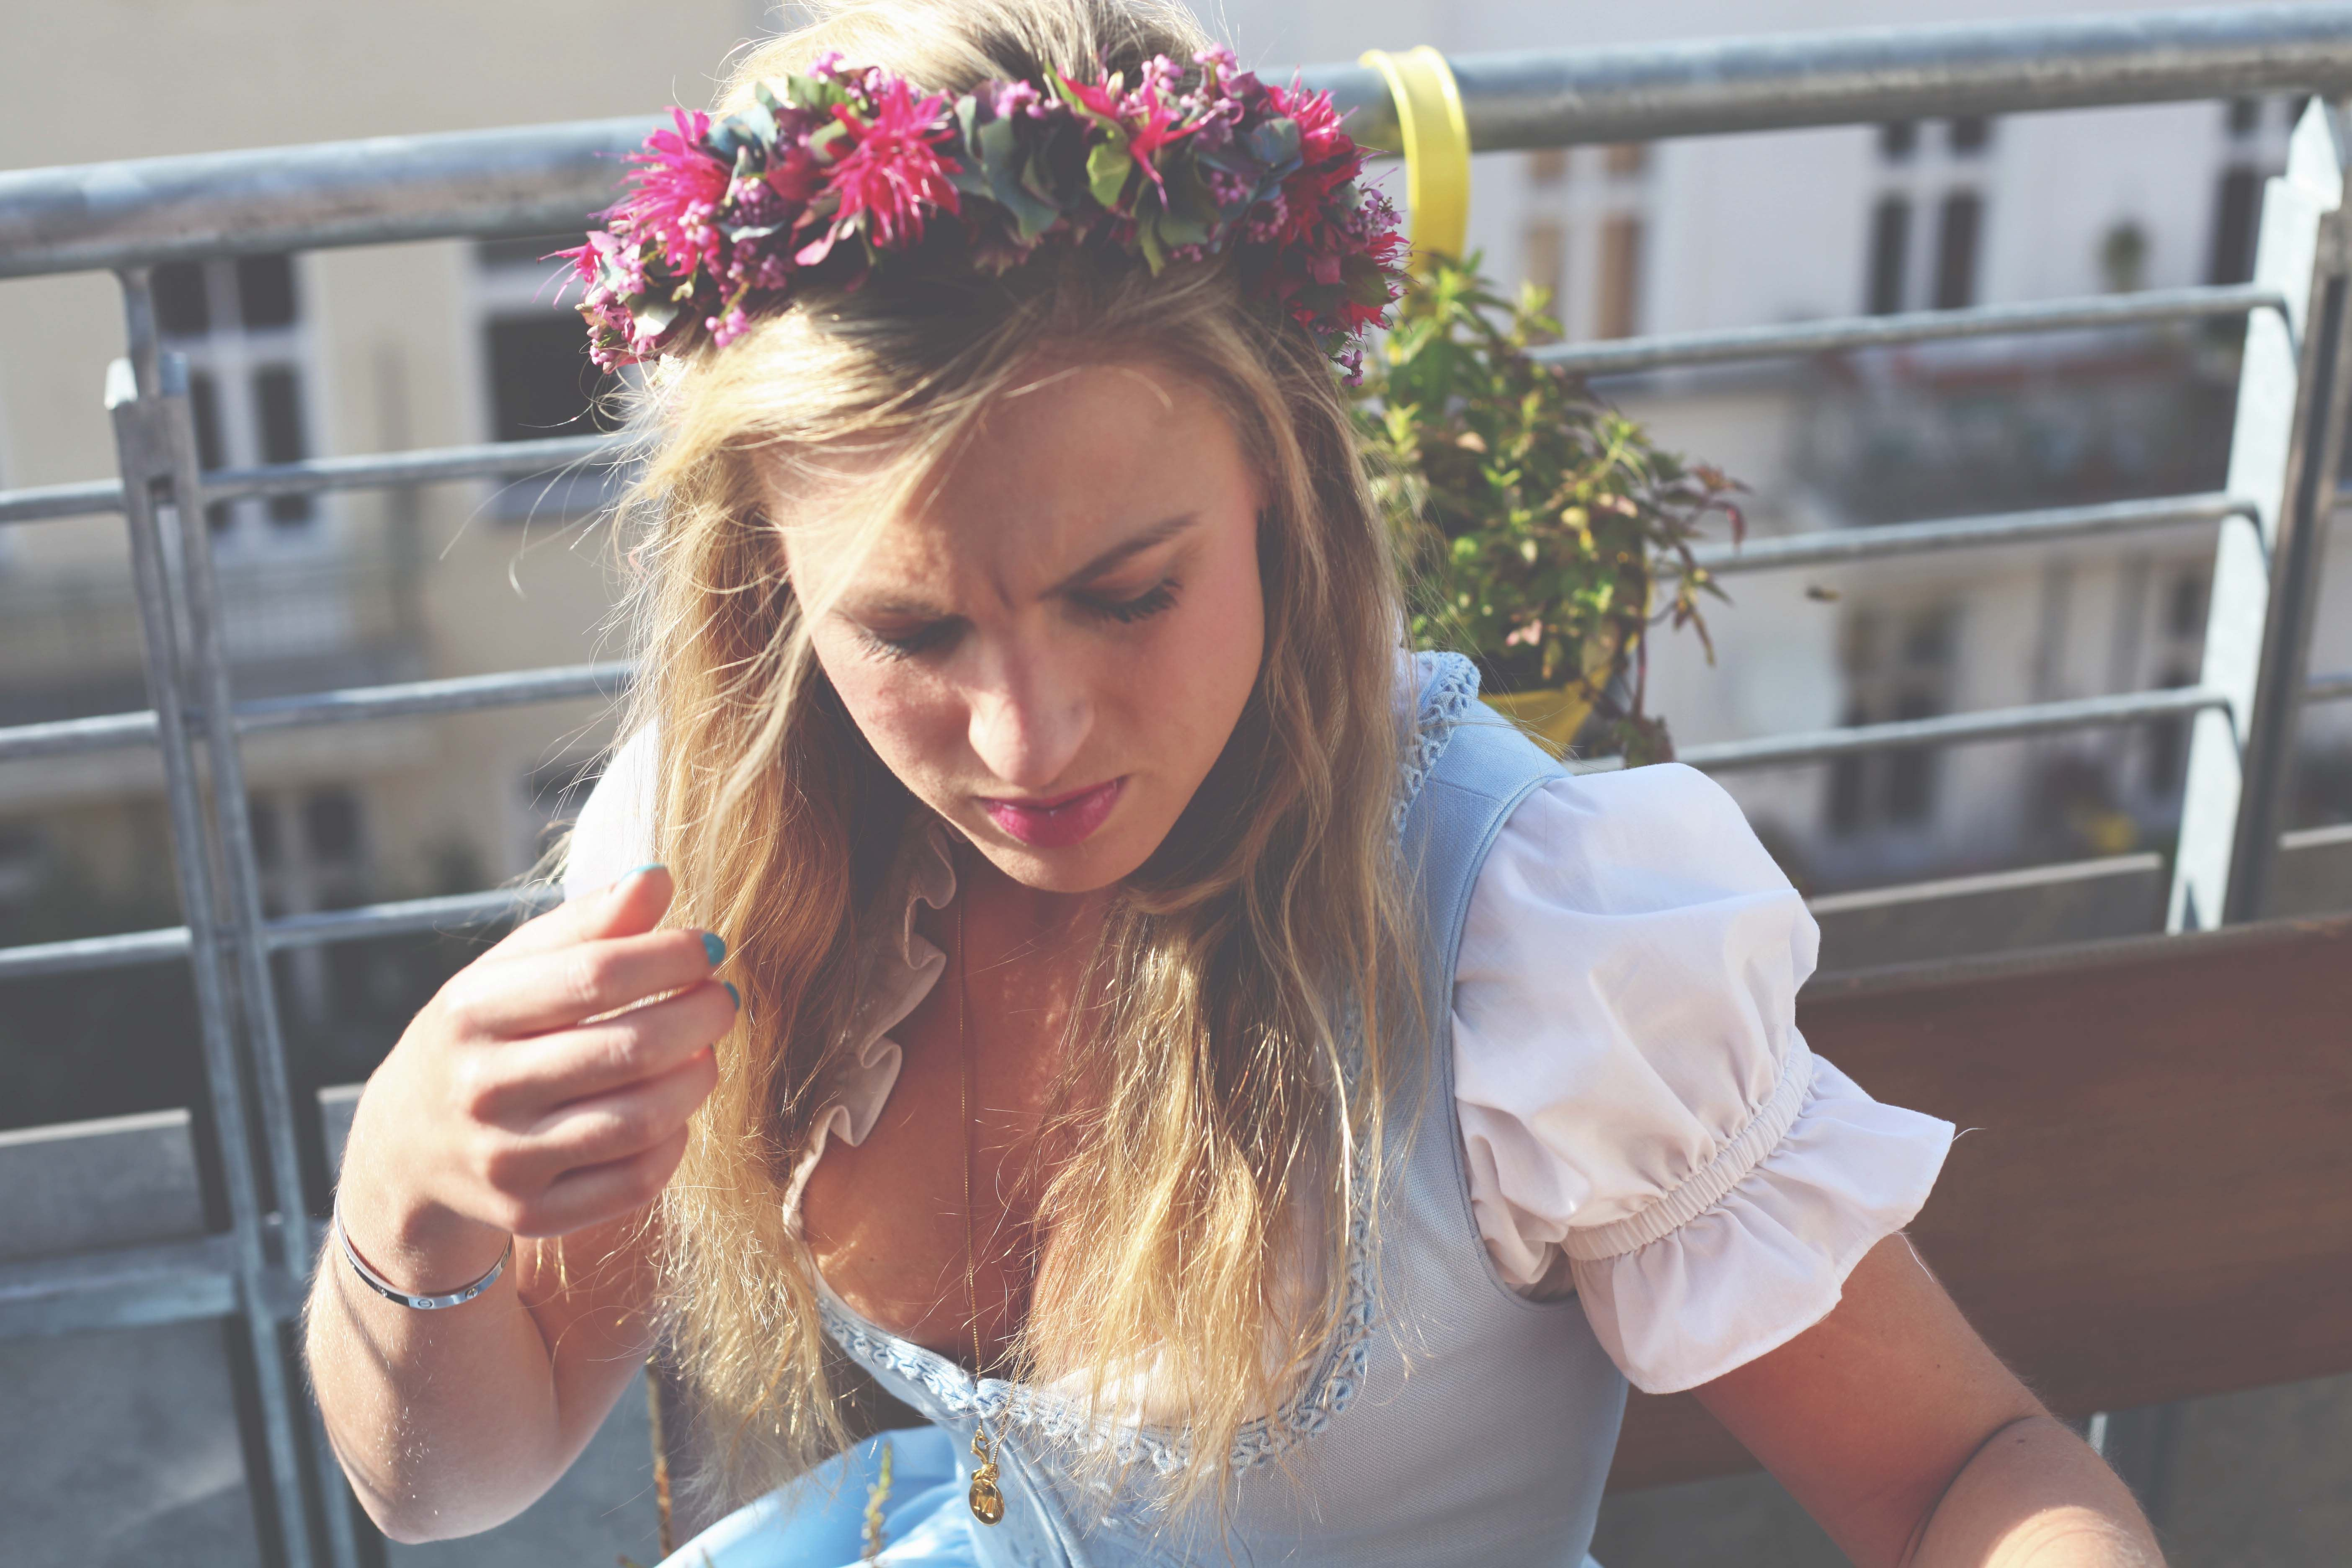 Real flower crown sweetest wiesn accessory besides our real flower crown sweetest wiesn accessory besides our oktoberfest cases of course 3 izmirmasajfo